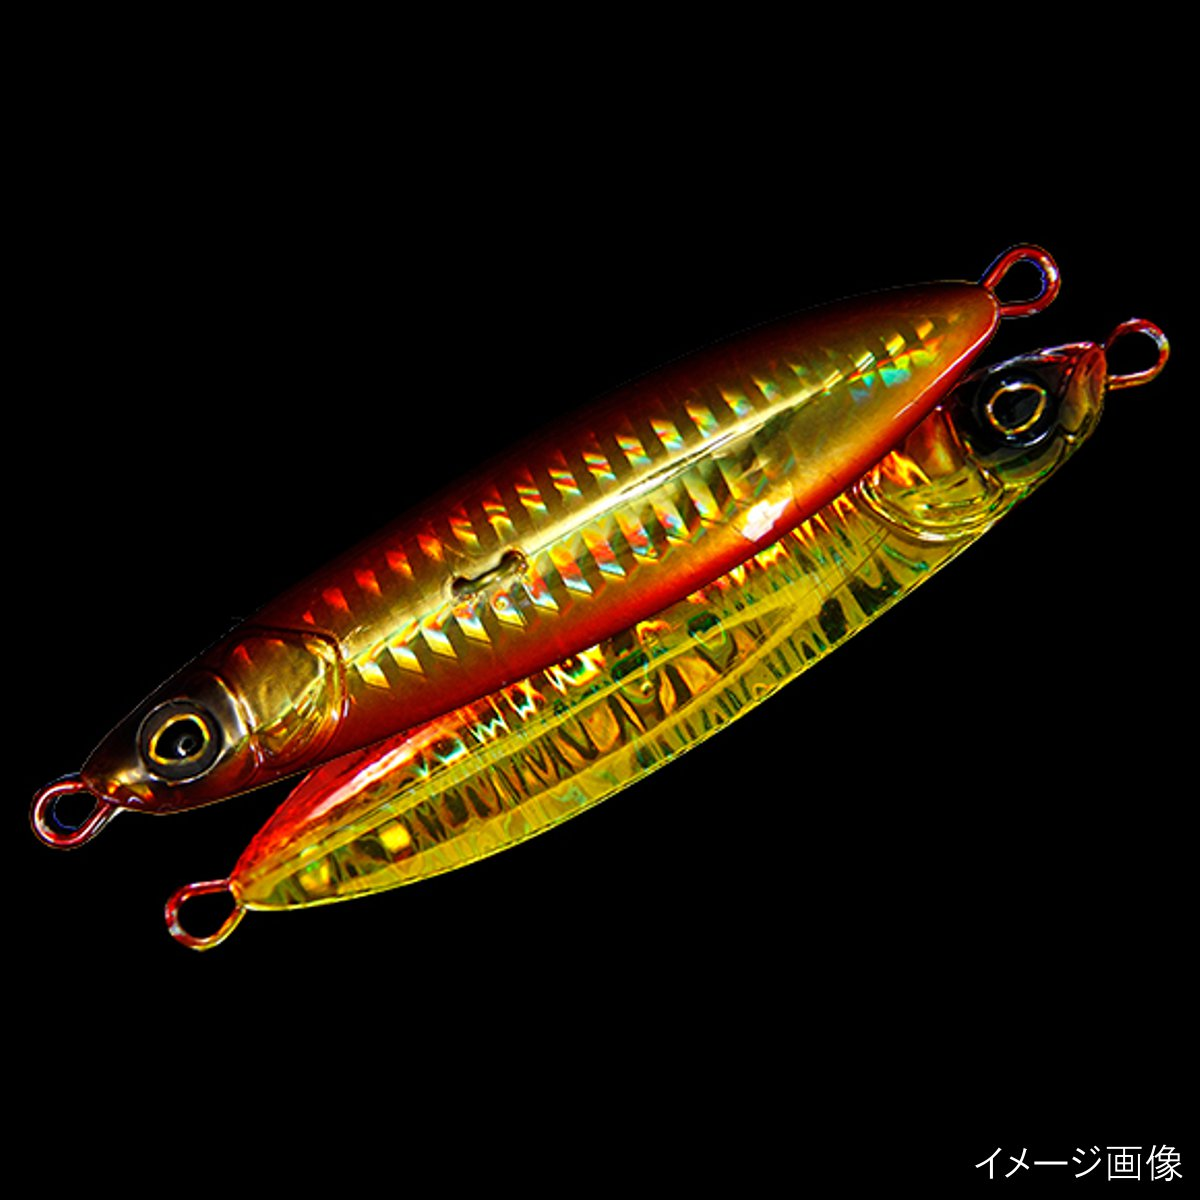 Jackal (JACKALL) cut backer 28 g red gold